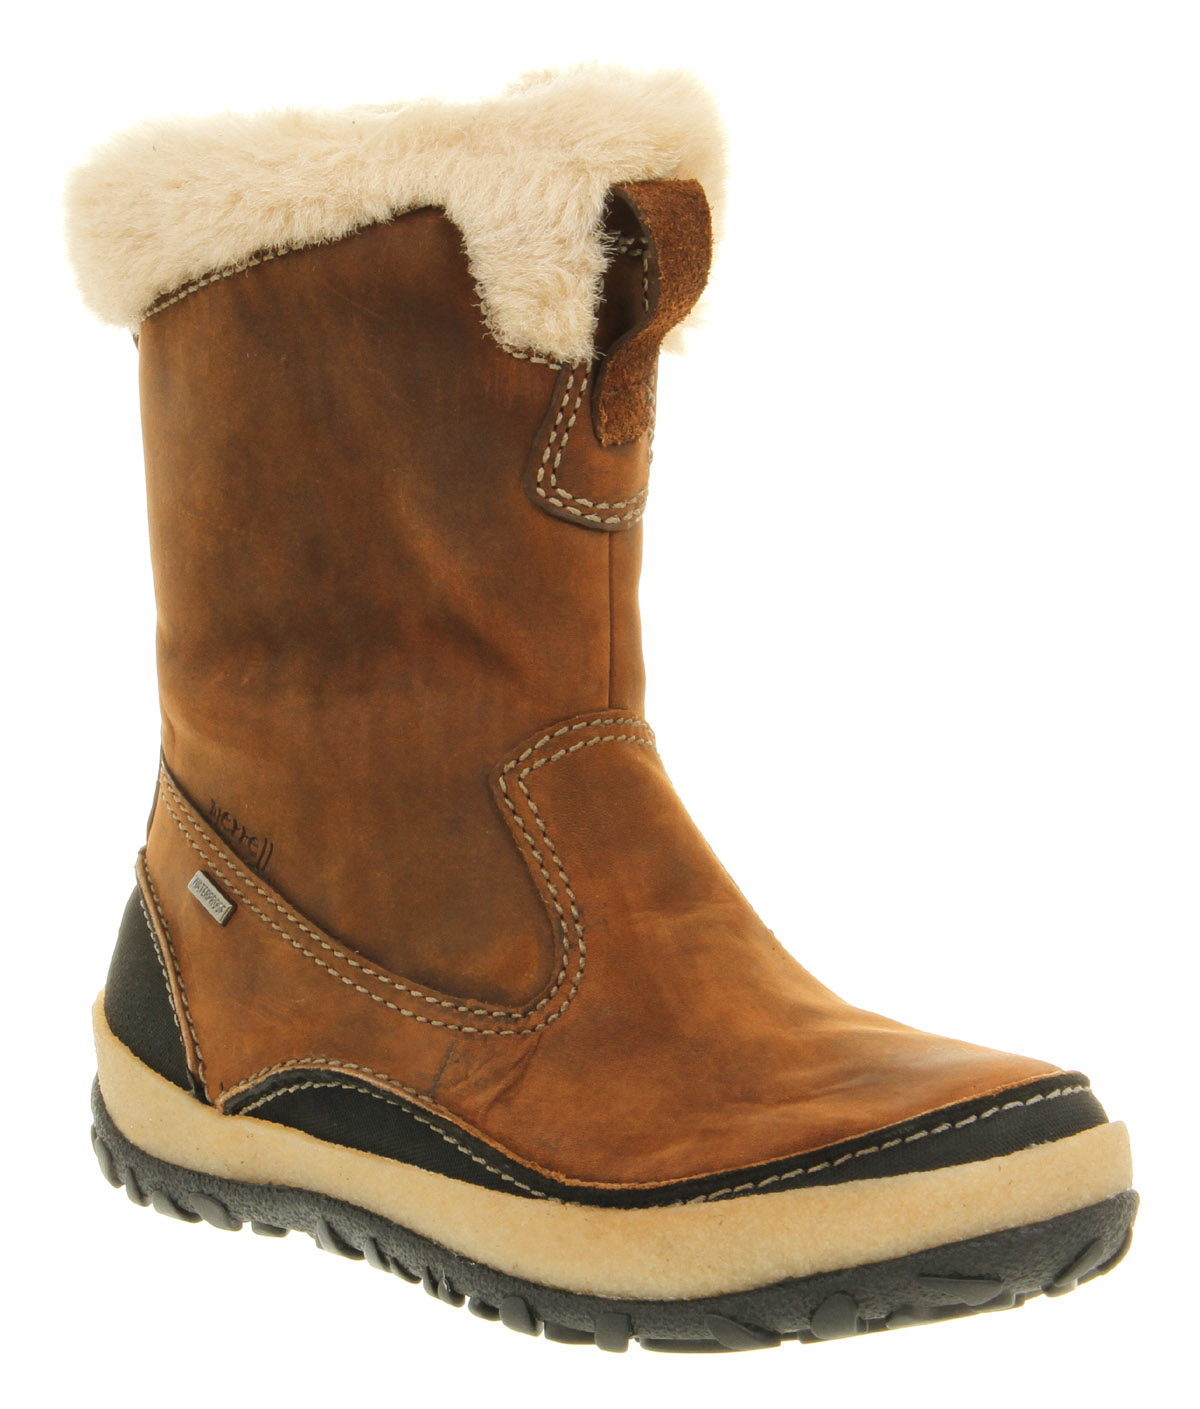 Womens Merrell Taiga Zip Up Camel Brown Waterproof Leather ...